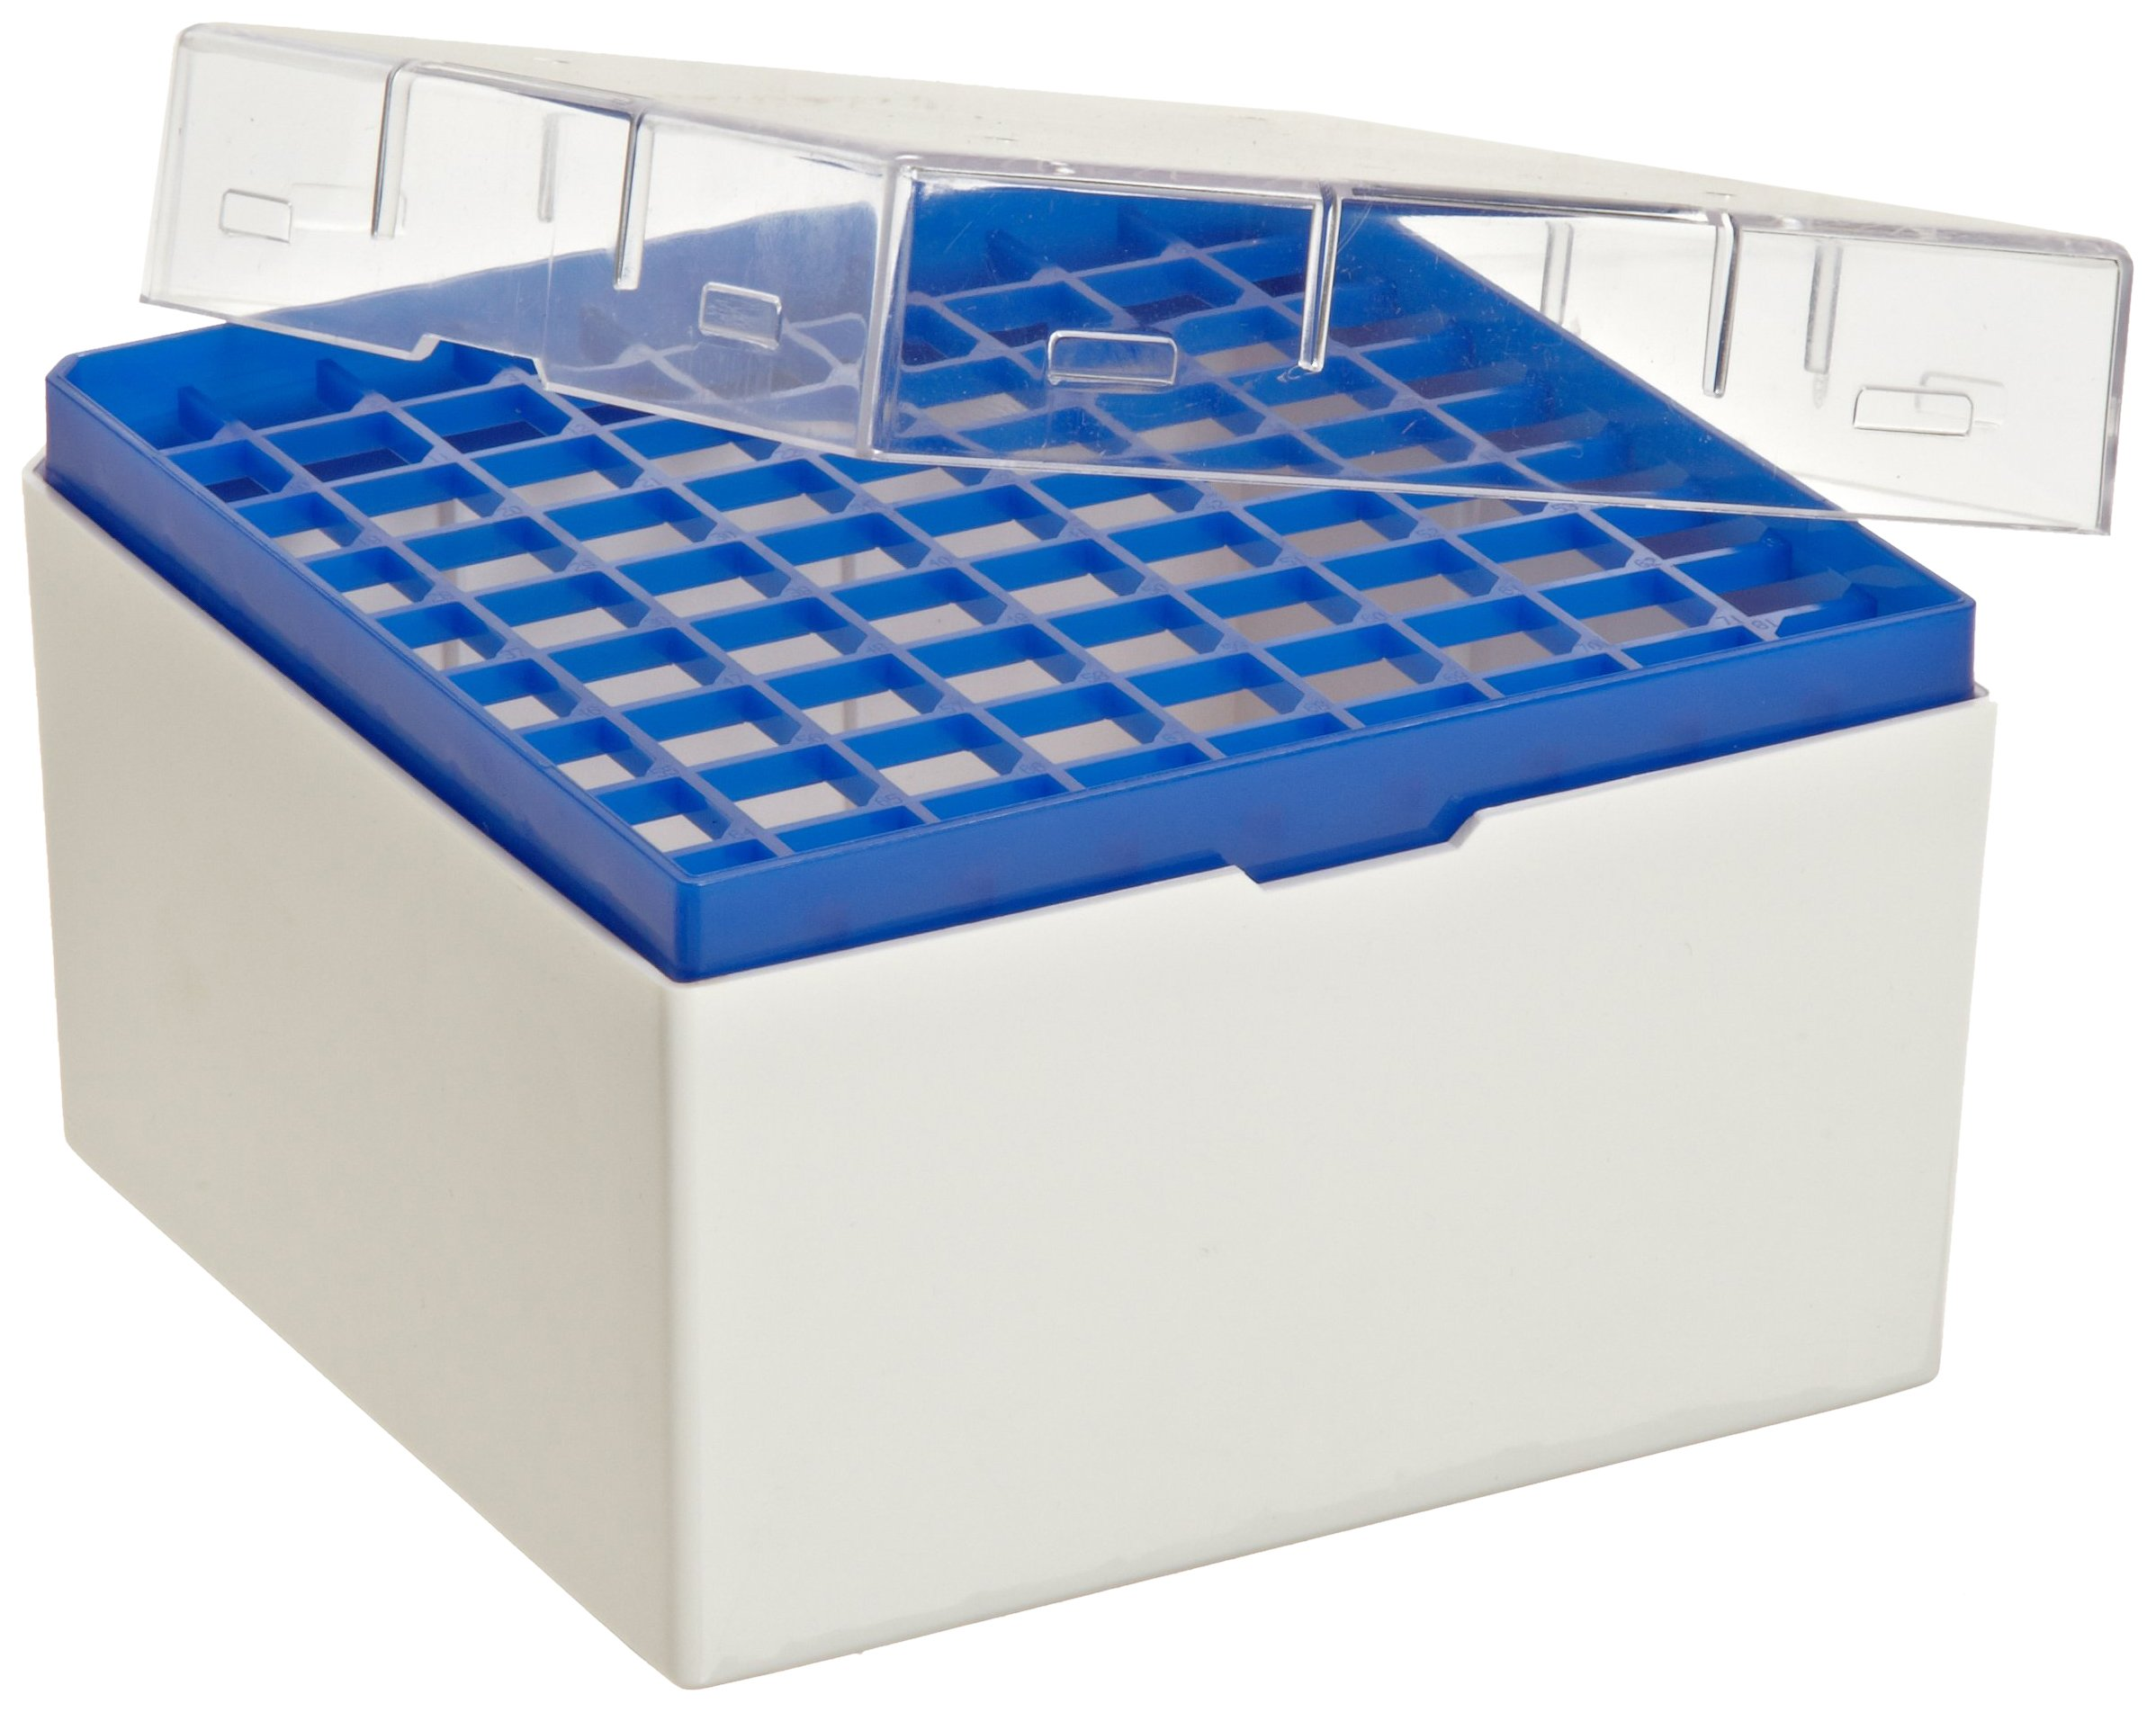 Bel-Art F18849-0002 Cryo-Safe Vial Storage Box; 81 Places, 5.0ml, Plastic, 5¼ x 5¼ x 3¾ in. (Pack of 4) by SP Scienceware (Image #2)